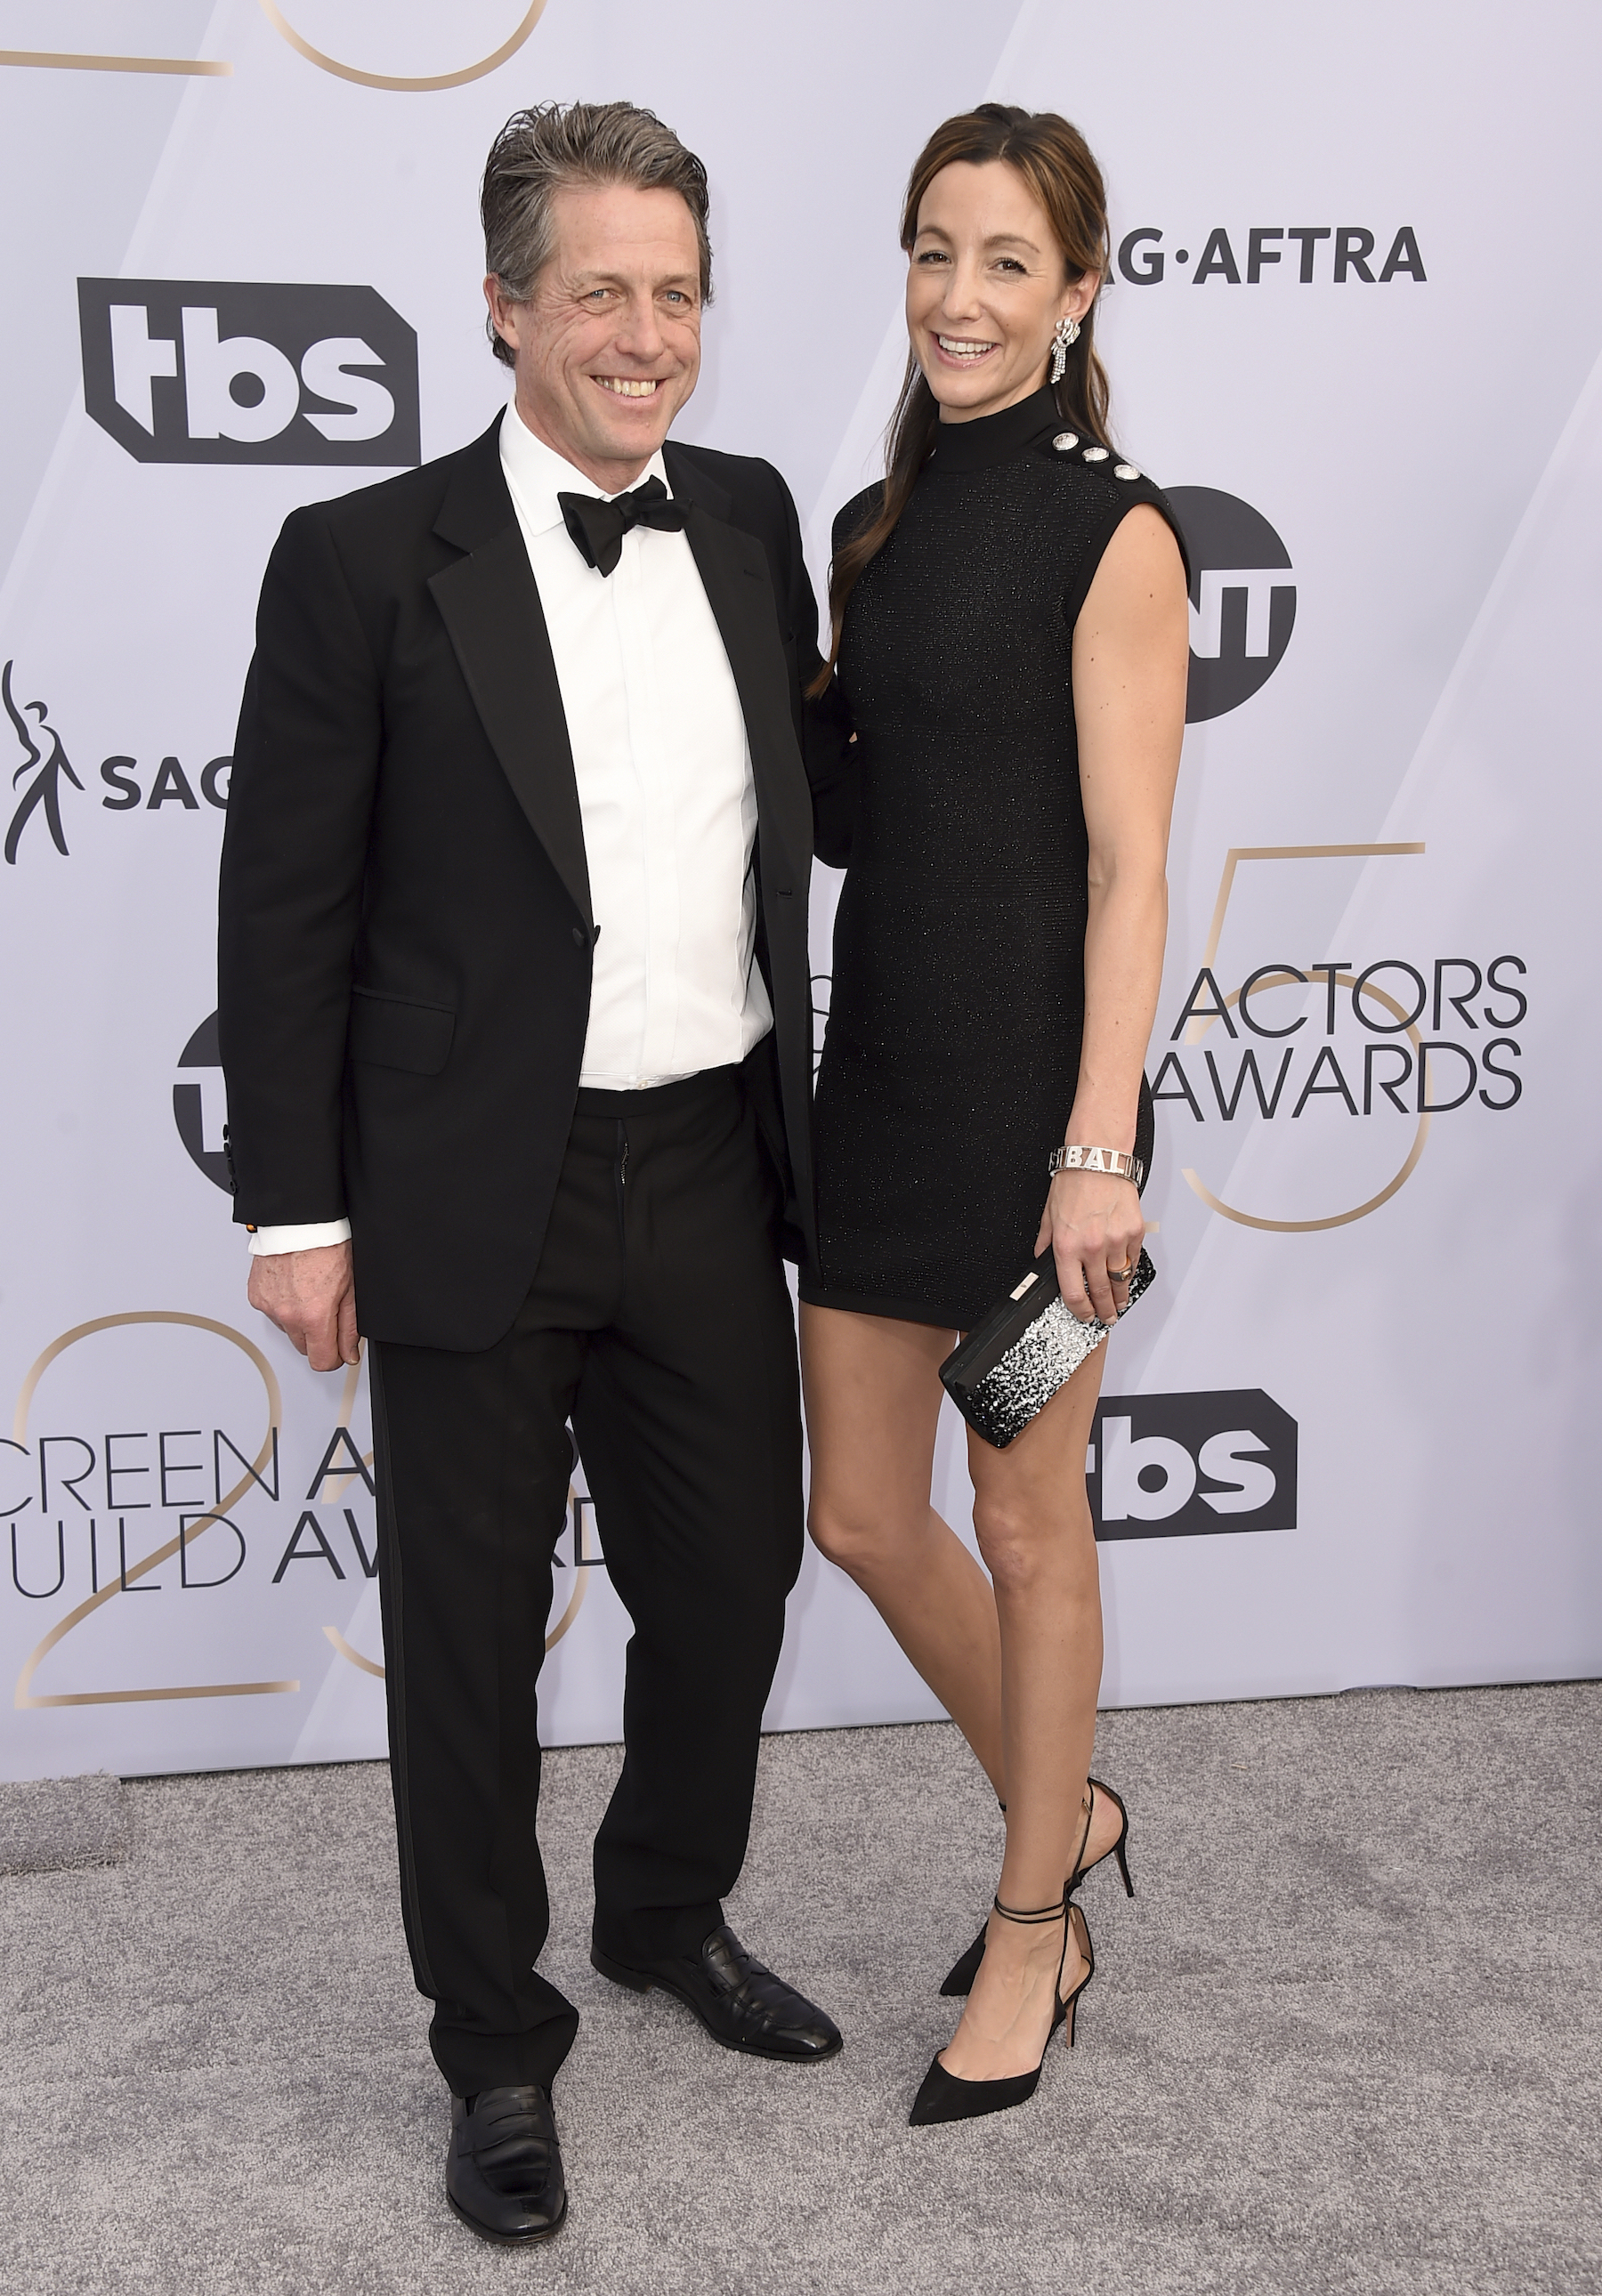 <div class='meta'><div class='origin-logo' data-origin='AP'></div><span class='caption-text' data-credit='Jordan Strauss/Invision/AP'>Hugh Grant, left, and Anna Elisabet Eberstein arrive at the 25th annual Screen Actors Guild Awards at the Shrine Auditorium & Expo Hall on Sunday, Jan. 27, 2019, in Los Angeles.</span></div>